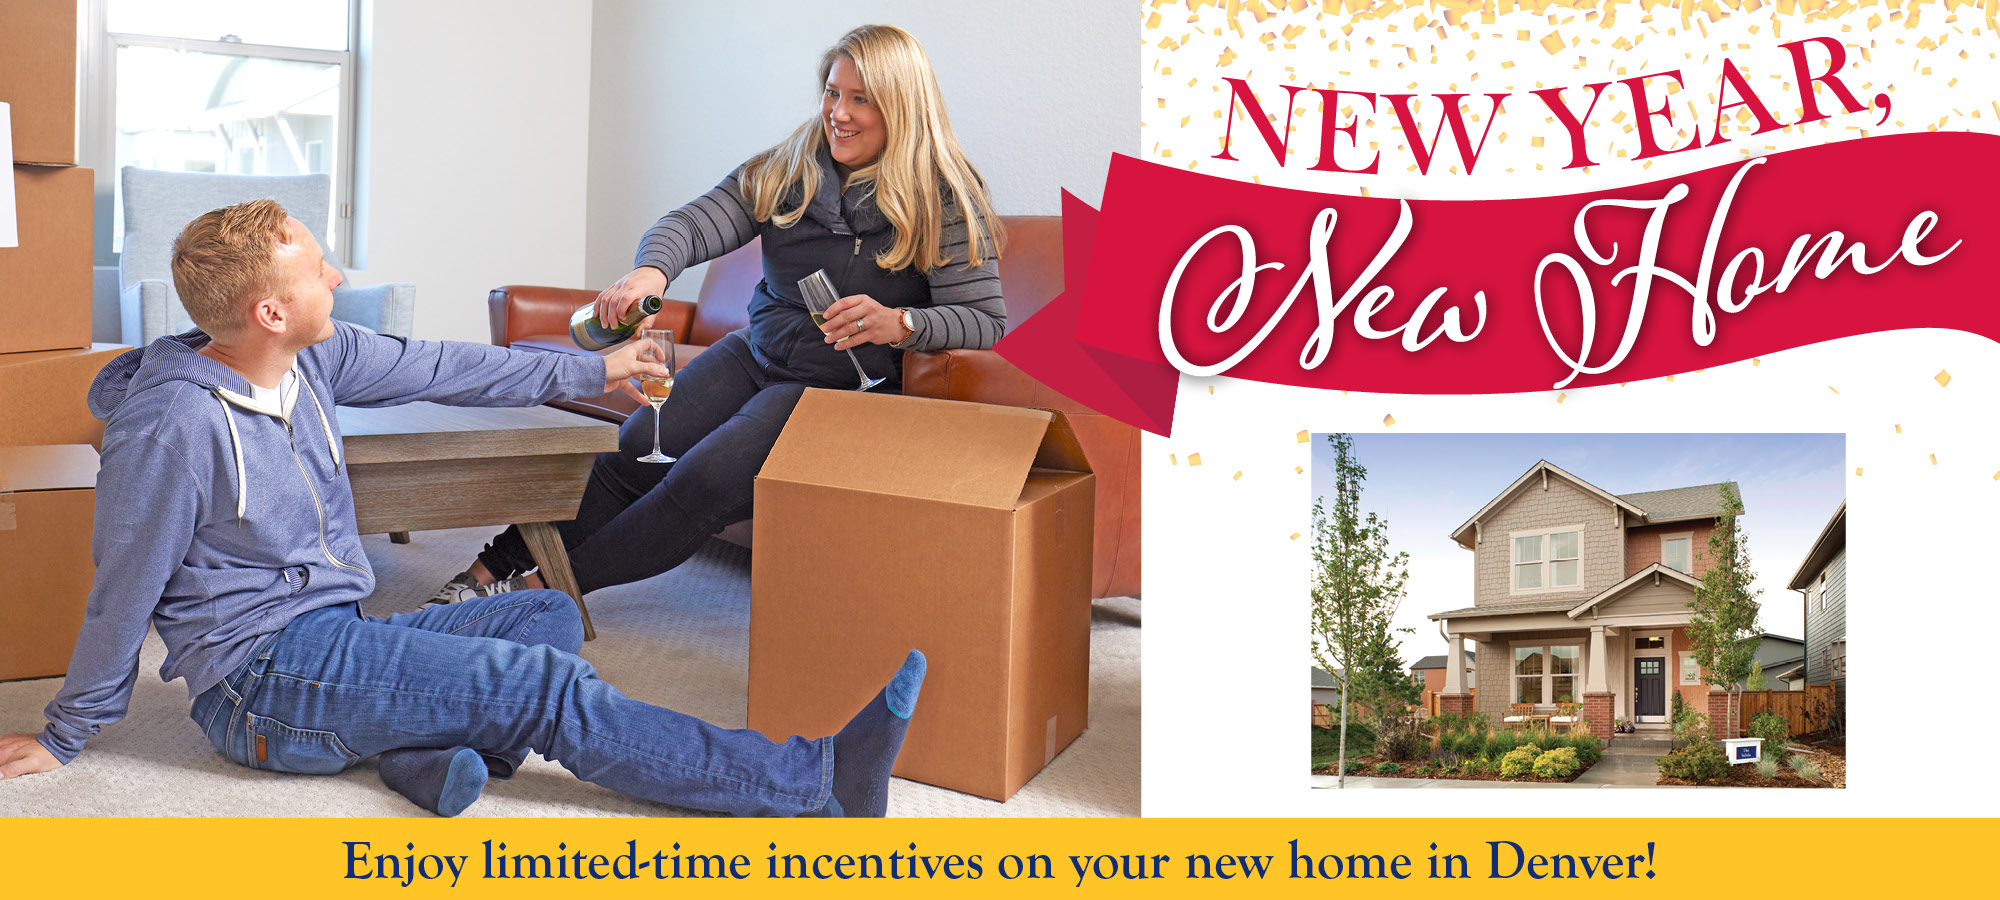 New Year, New Home in Denver